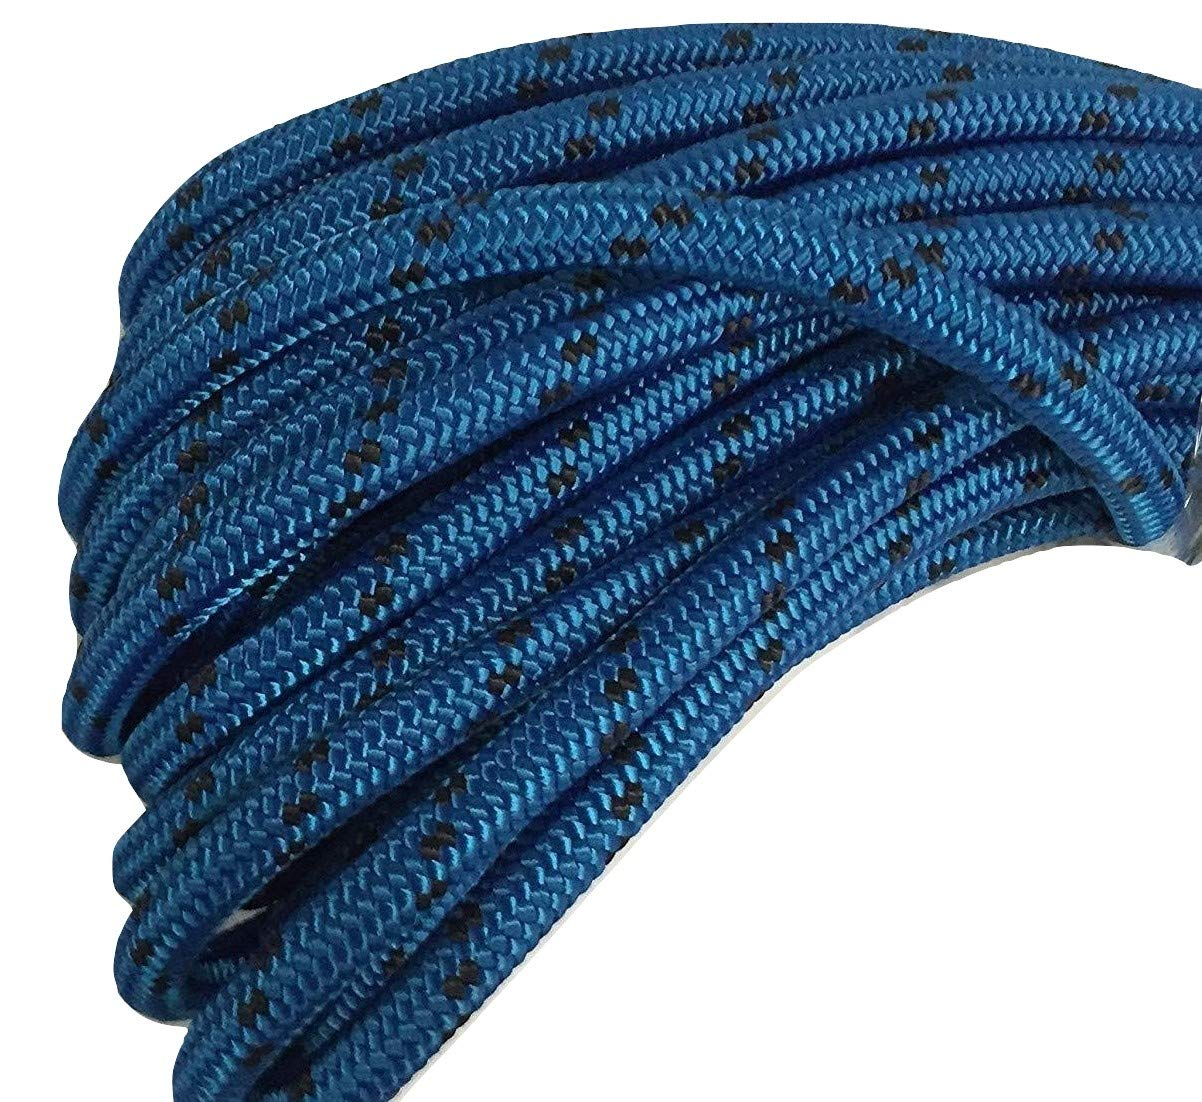 5/8'' X 150' Double Braid Polyester Arborist Bull Rope, Blue/Black by Blue Ox Rope